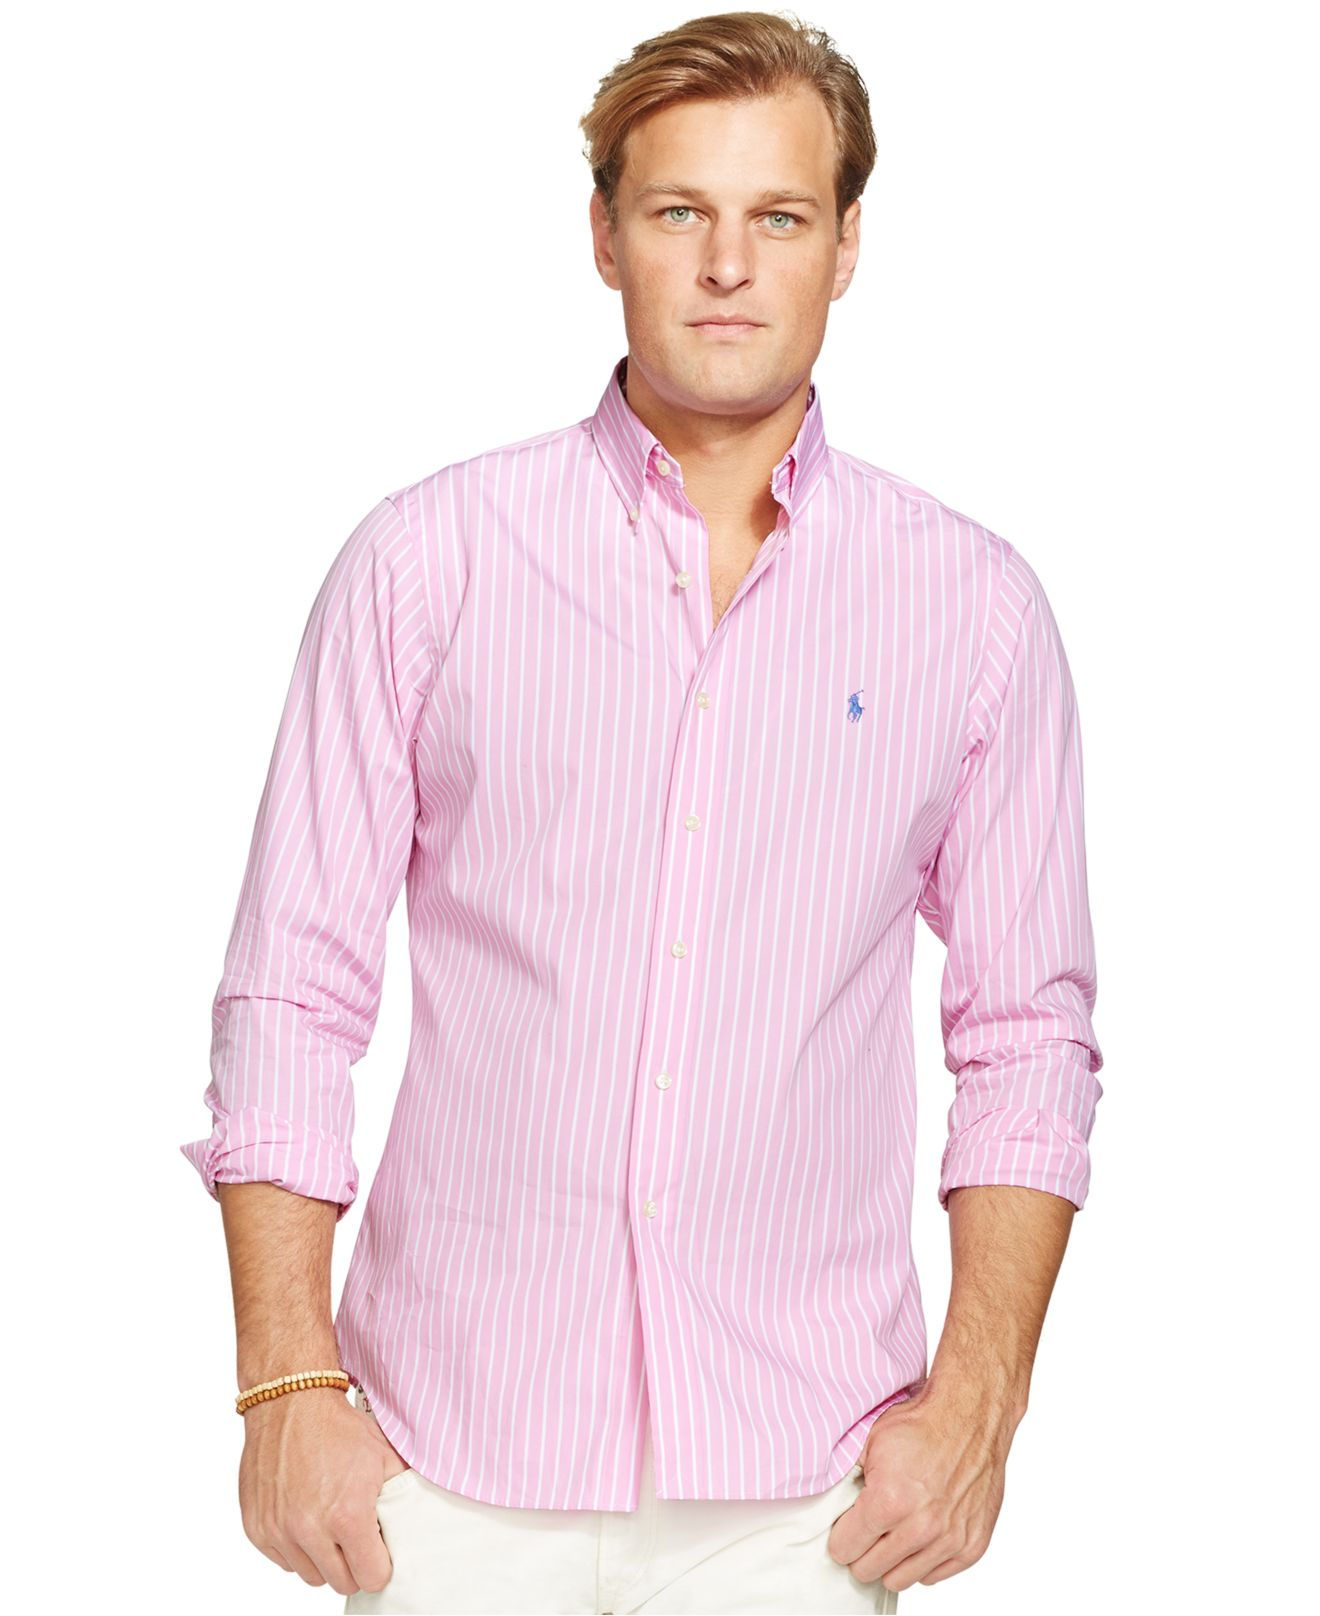 51b4279abc2f8 Lyst - Polo Ralph Lauren Big And Tall Poplin Striped Long Sleeve ...